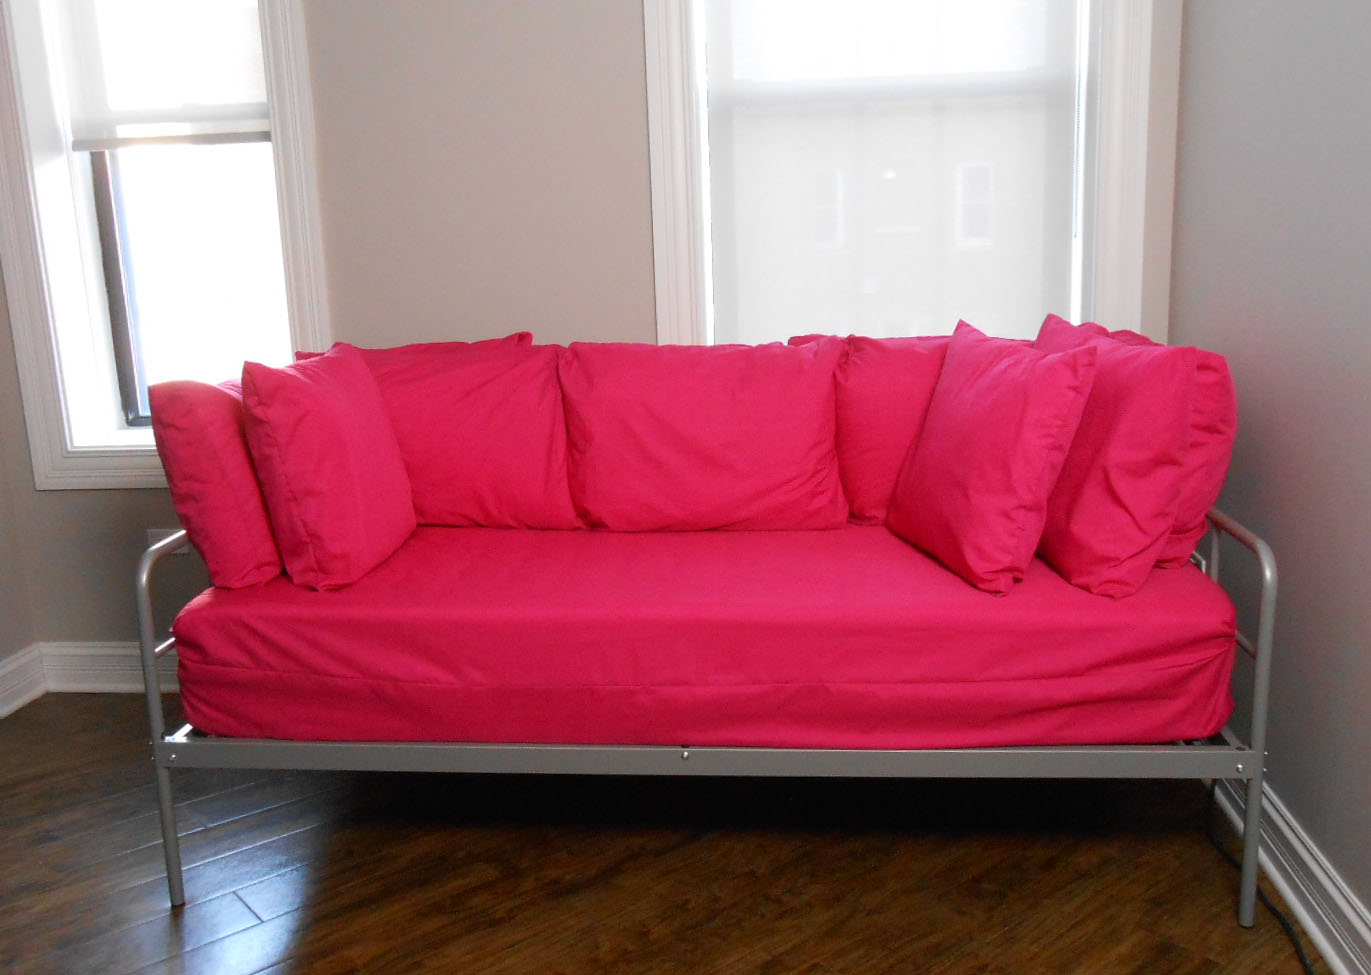 Daybed Sofa Styling